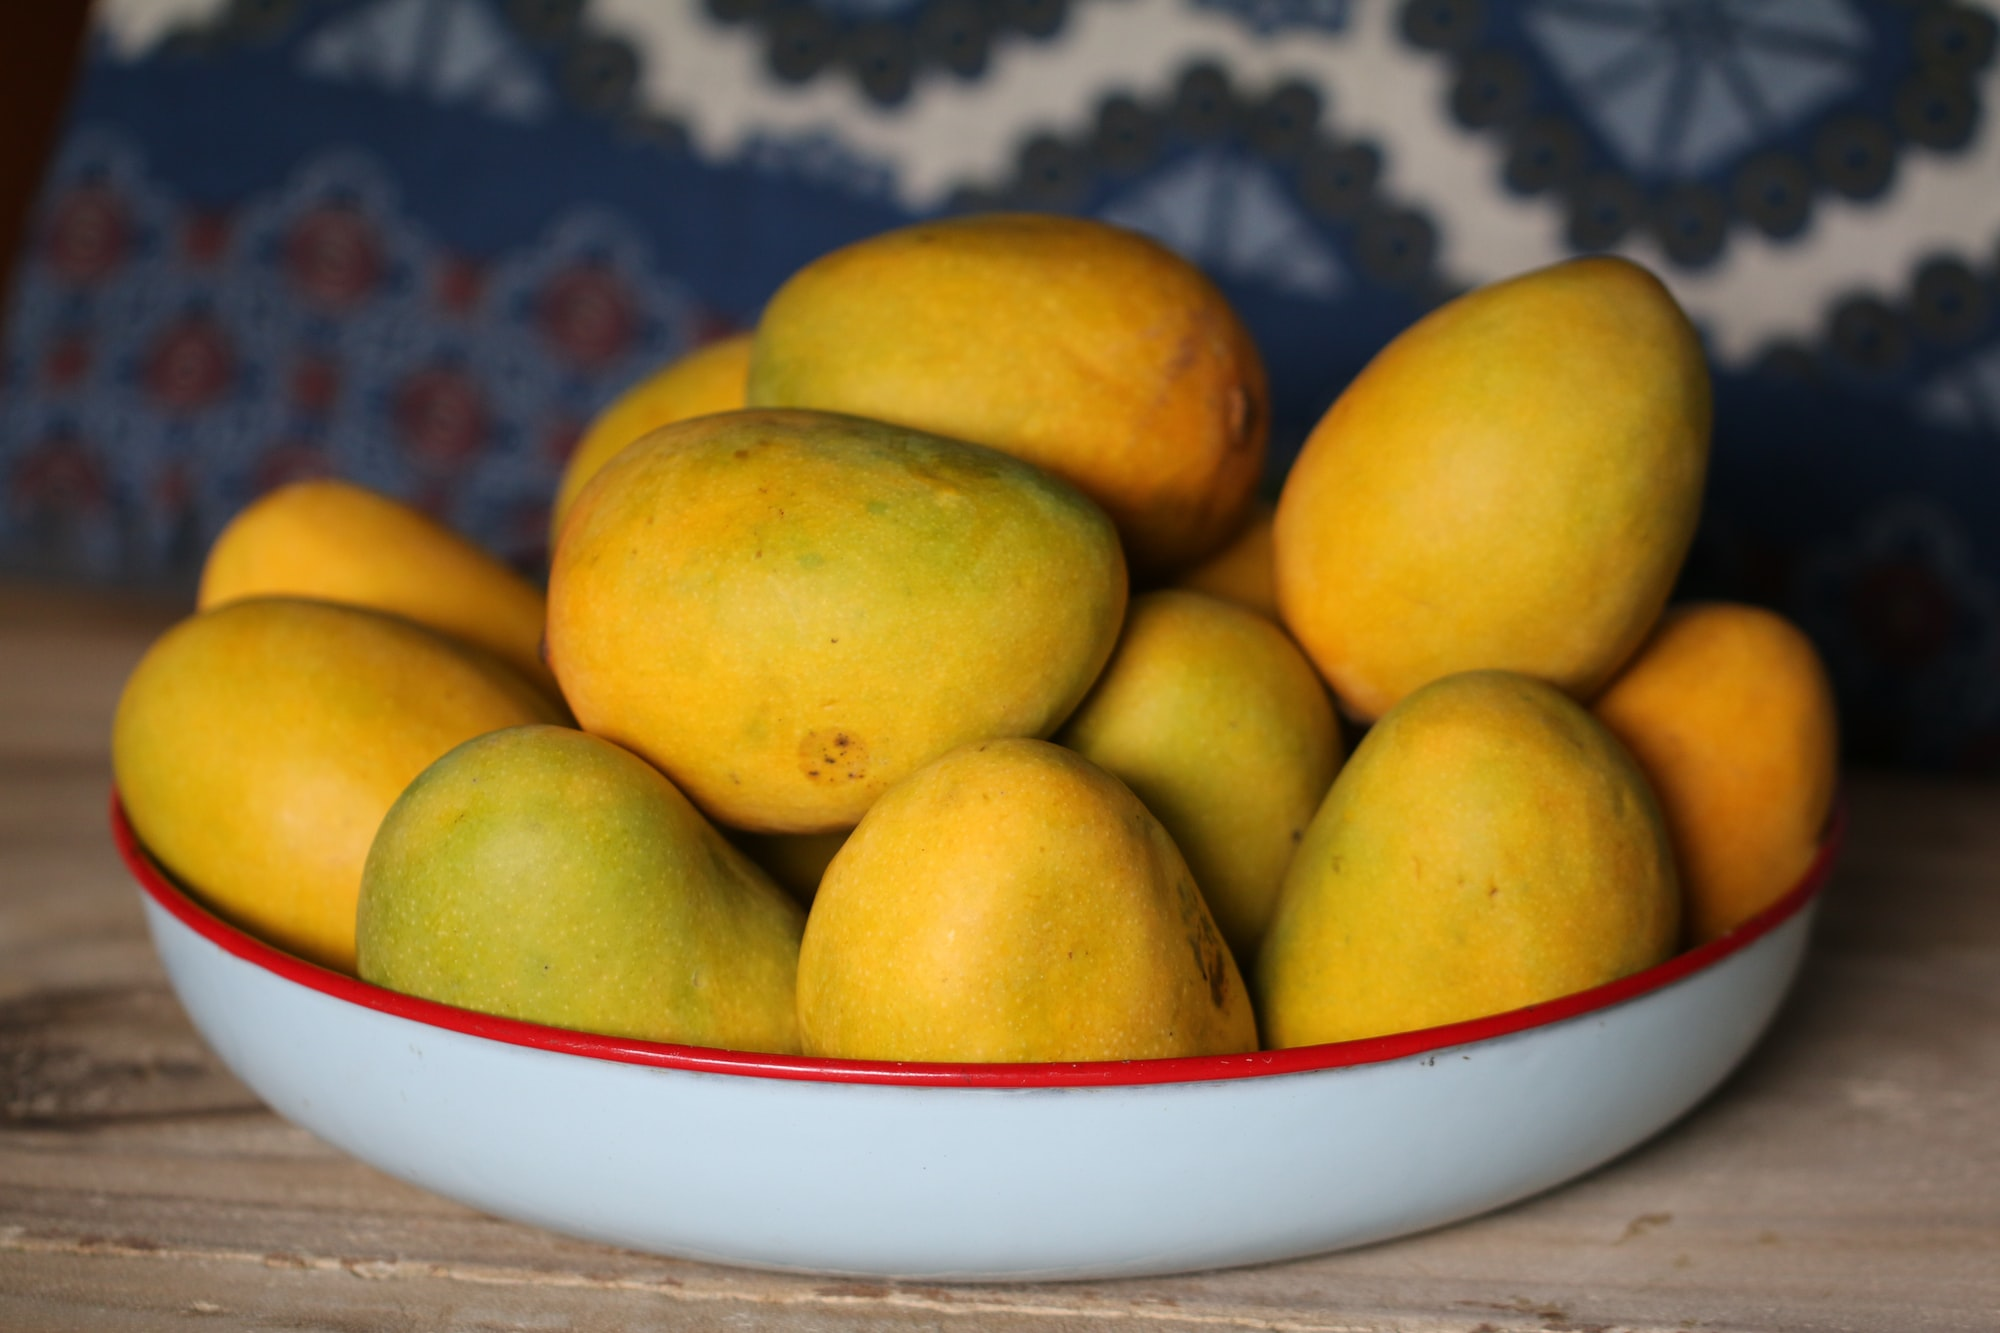 A wide bowl with a red rim is filled with yellow mangoes